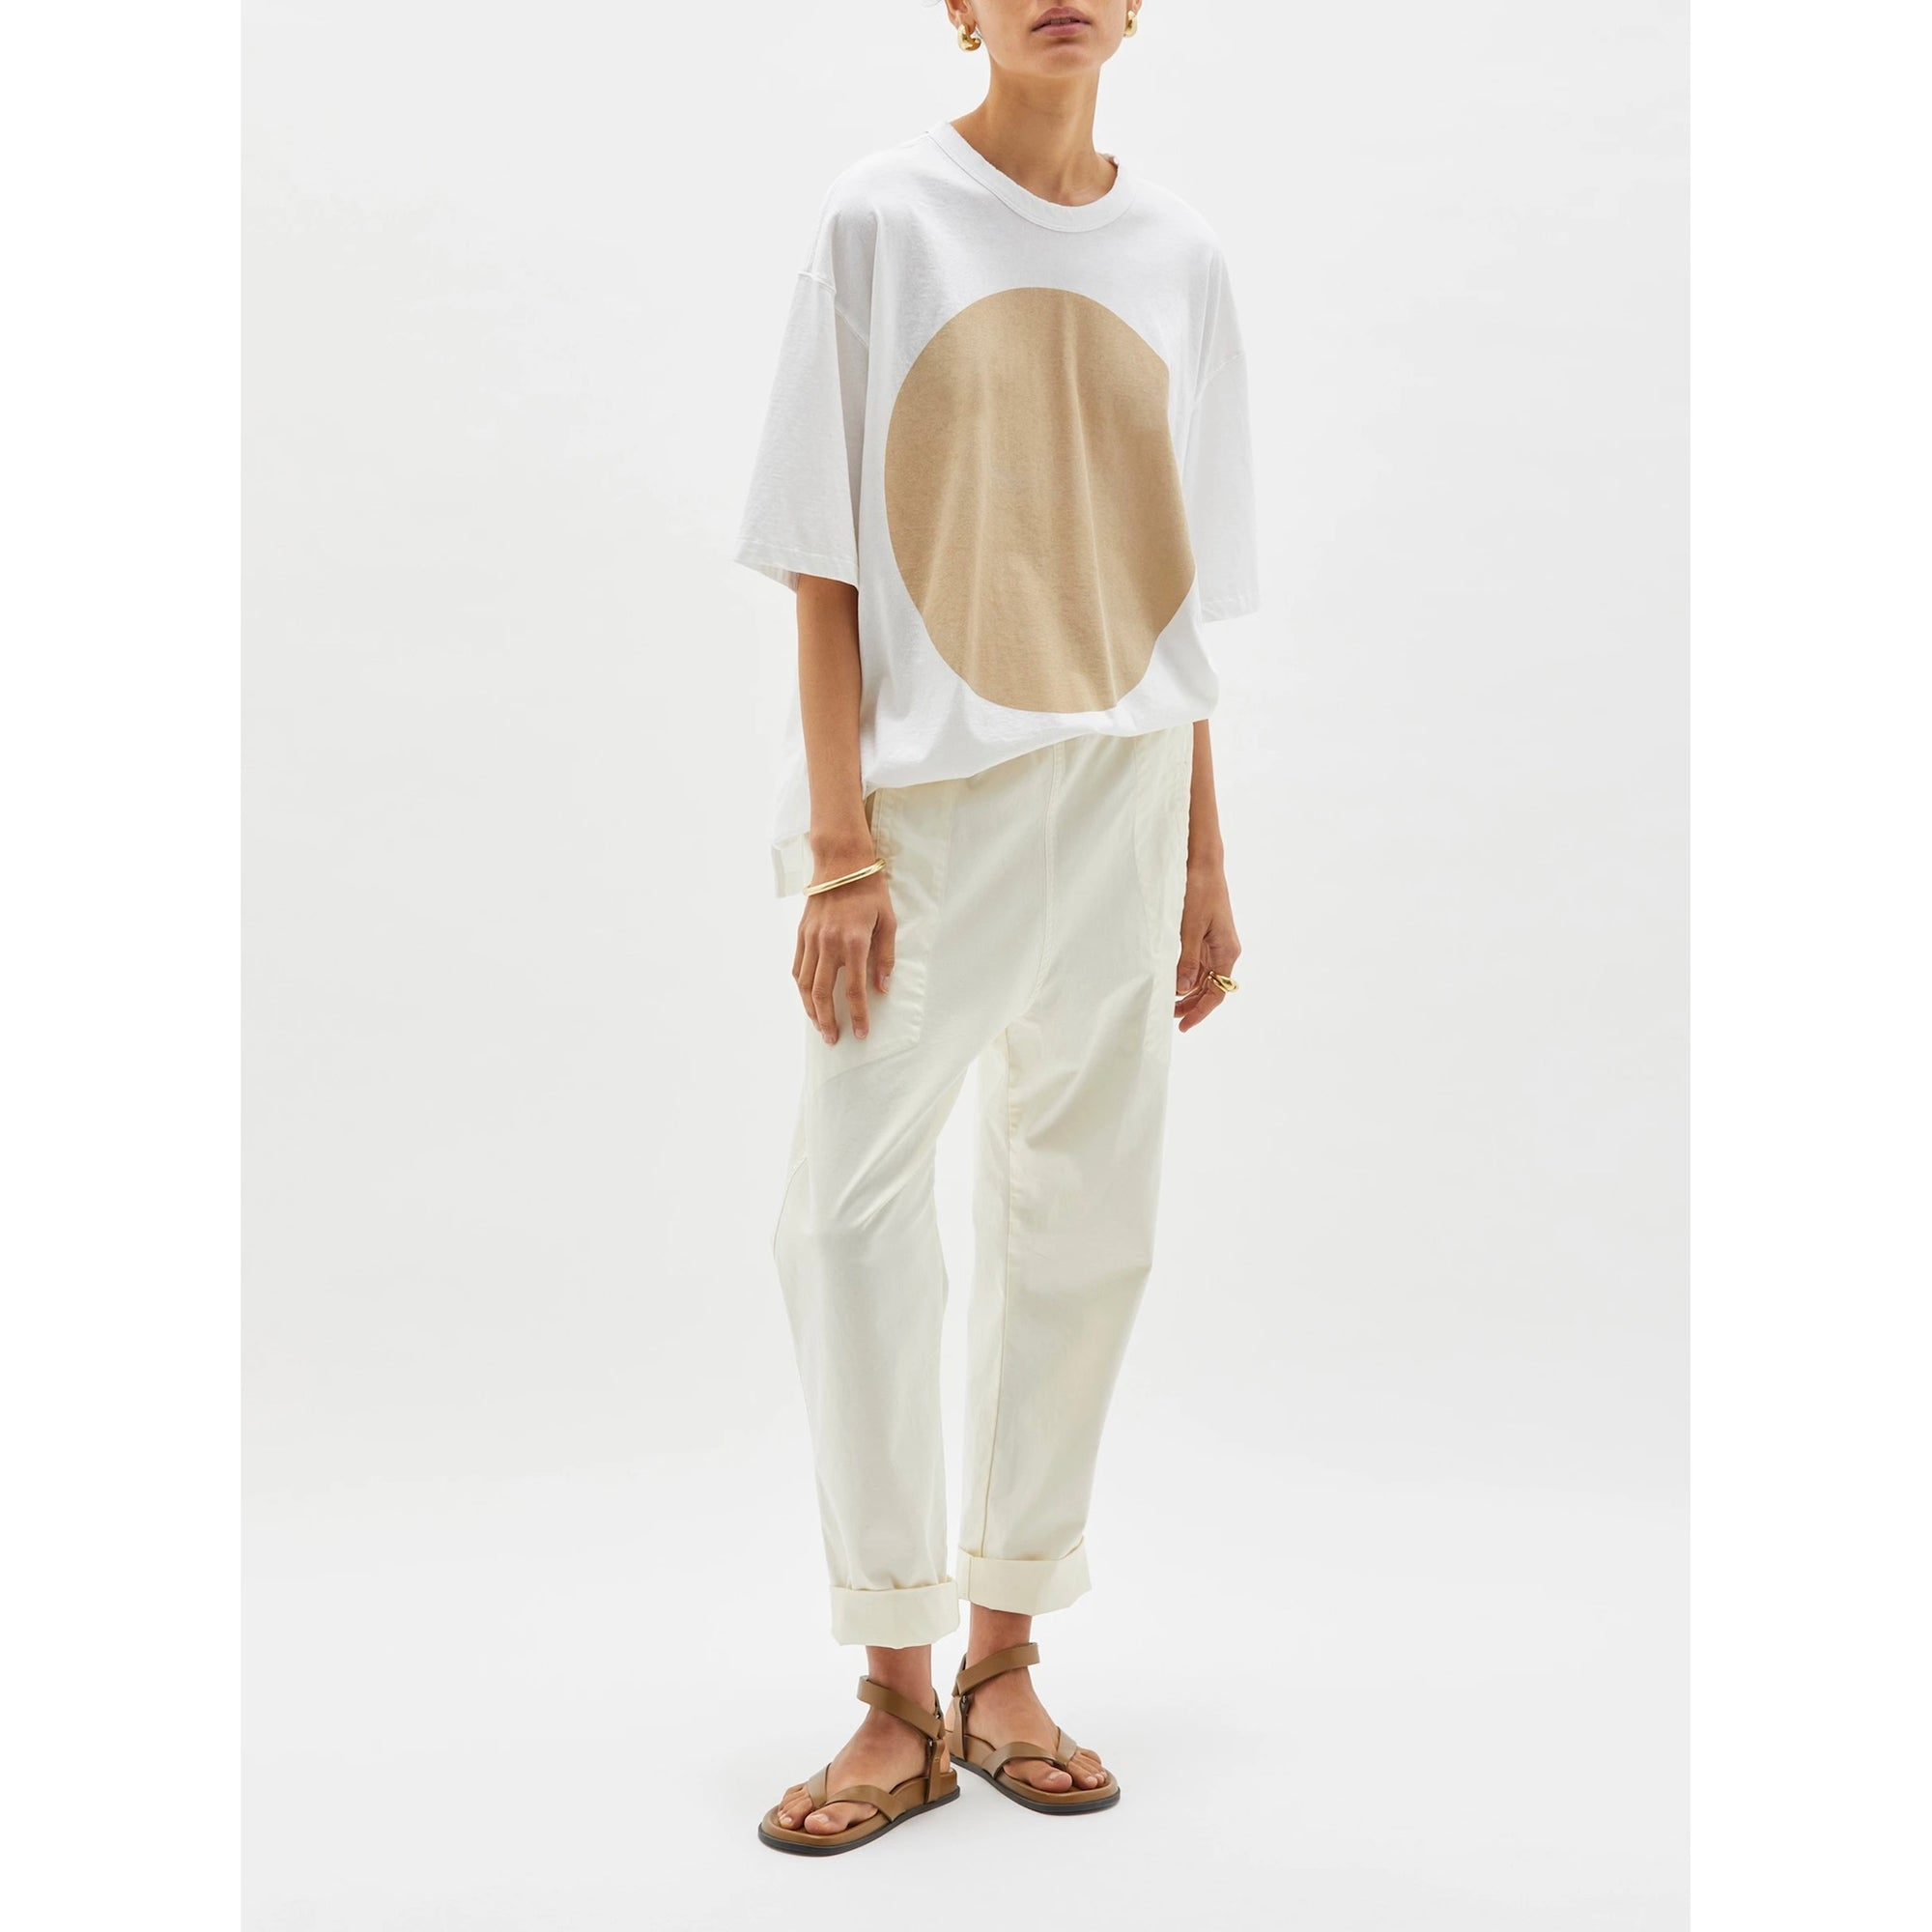 Bassike OS Wide Htg dot s/s t.shirt